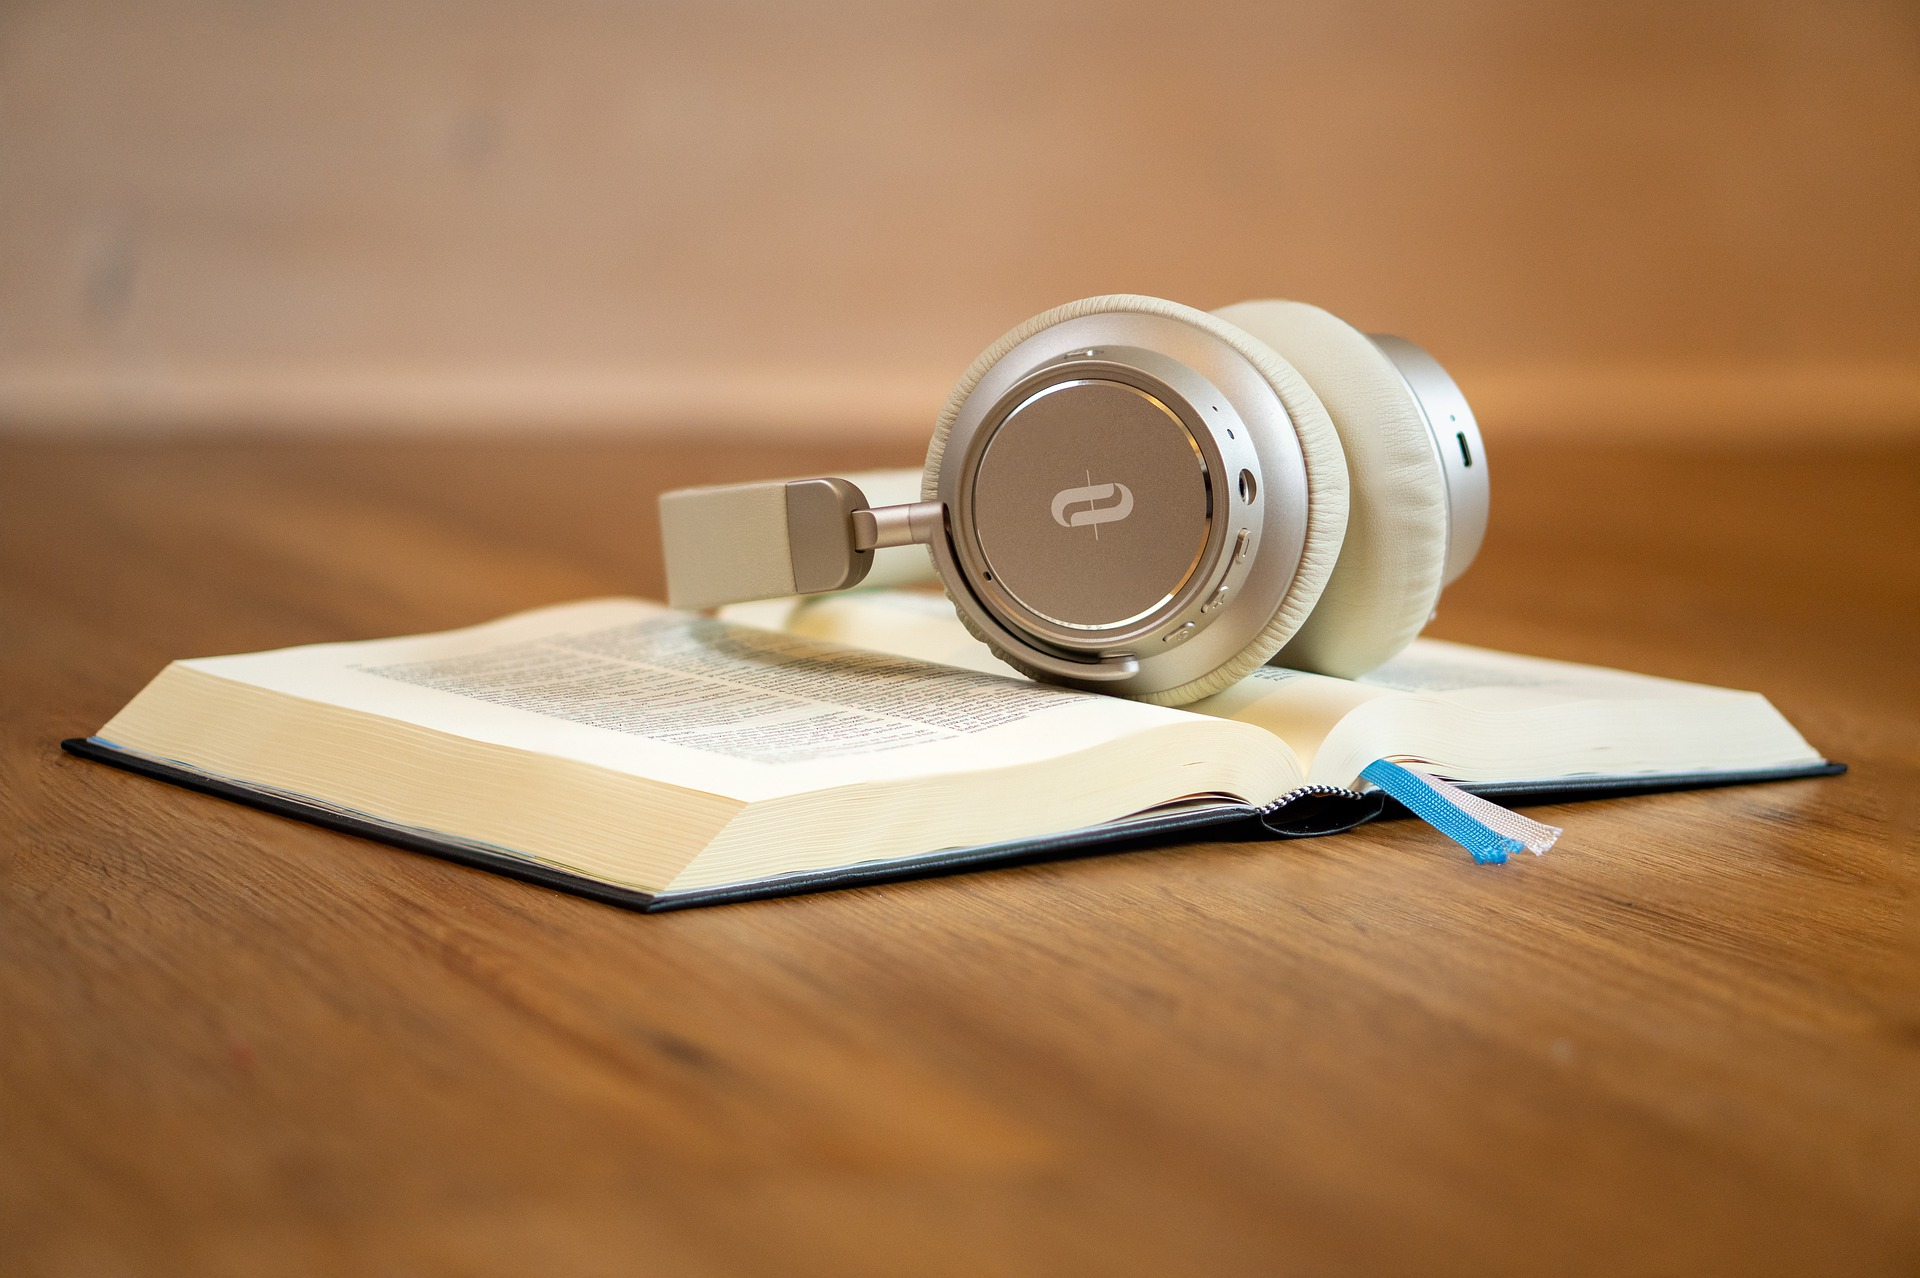 listening to music while reading